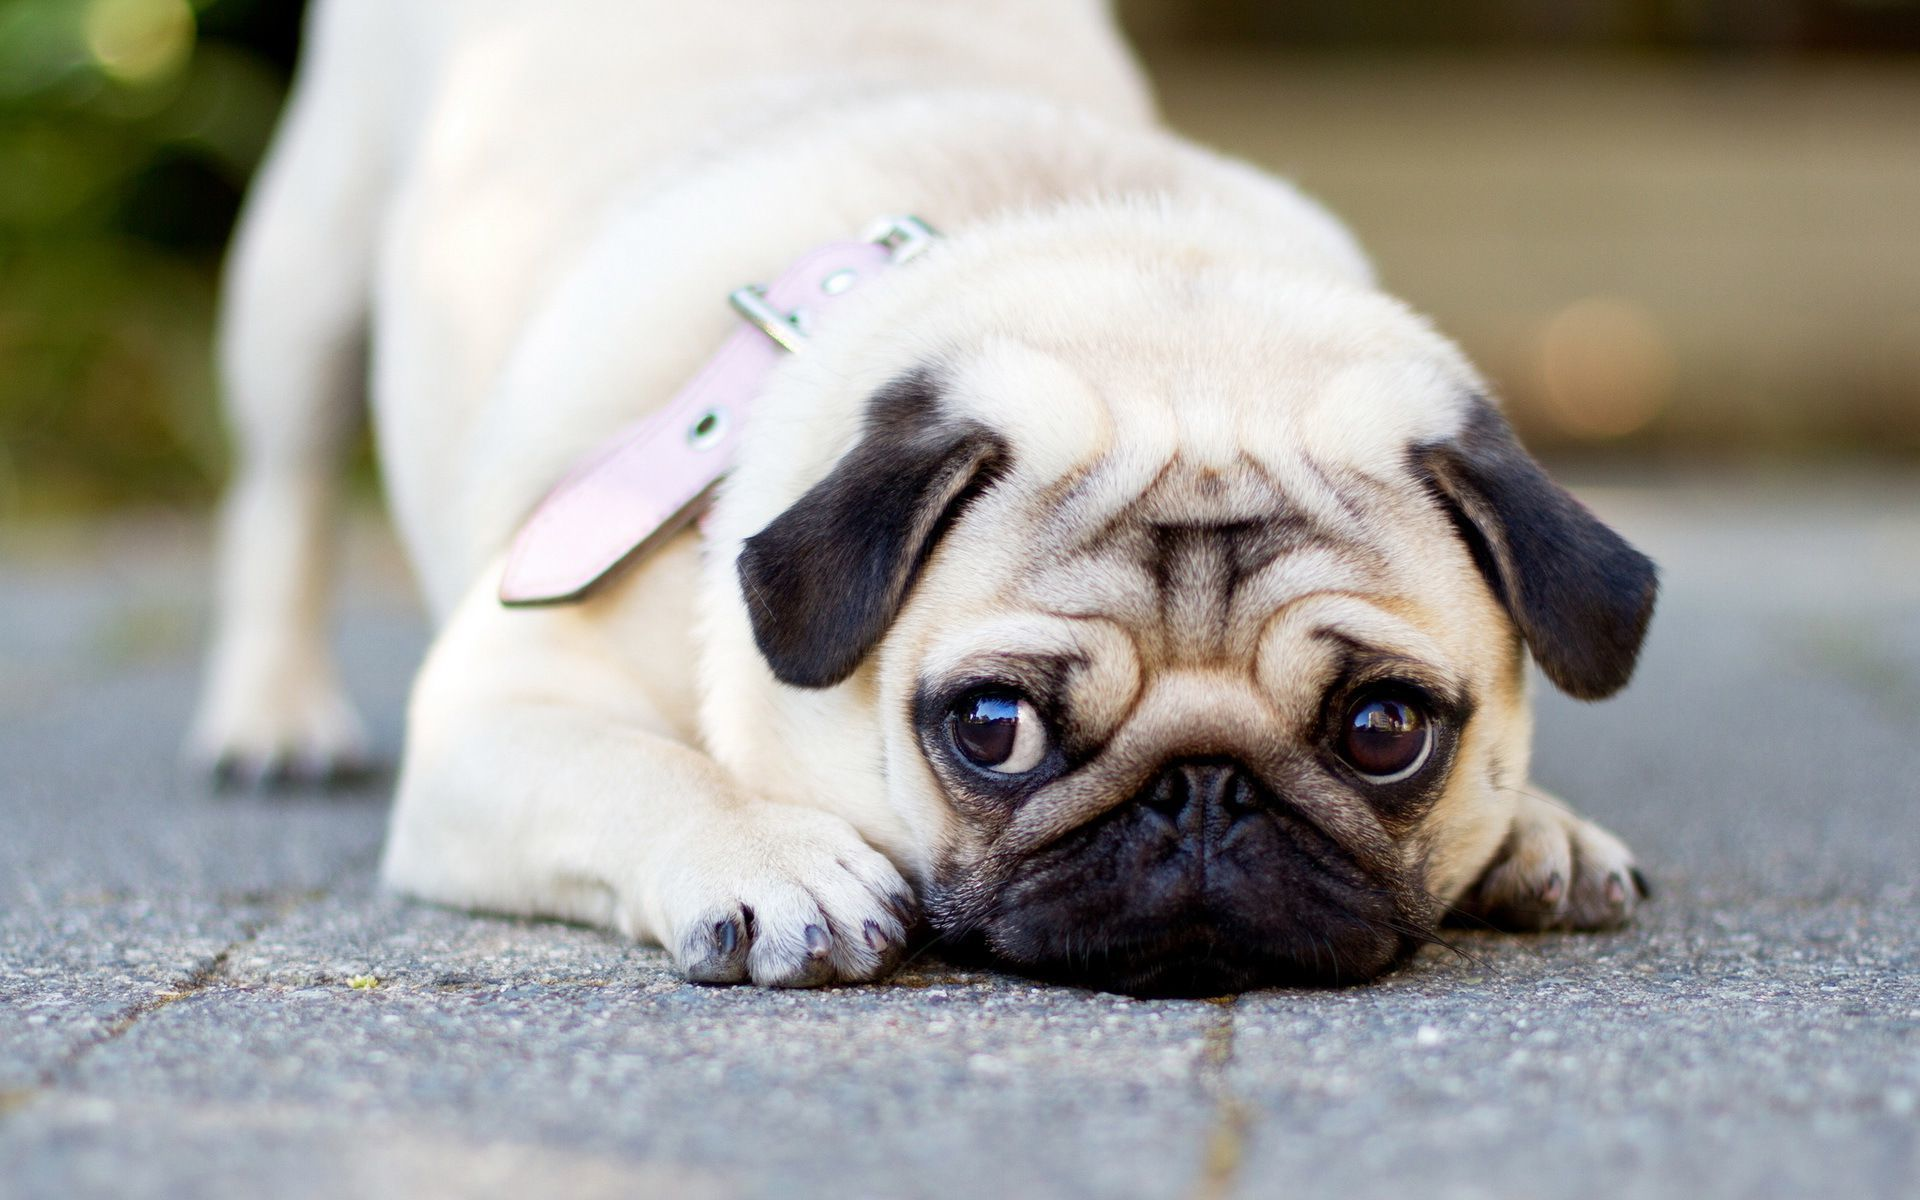 Cute Pug Dog Wallpapers Top Free Cute Pug Dog Backgrounds Wallpaperaccess